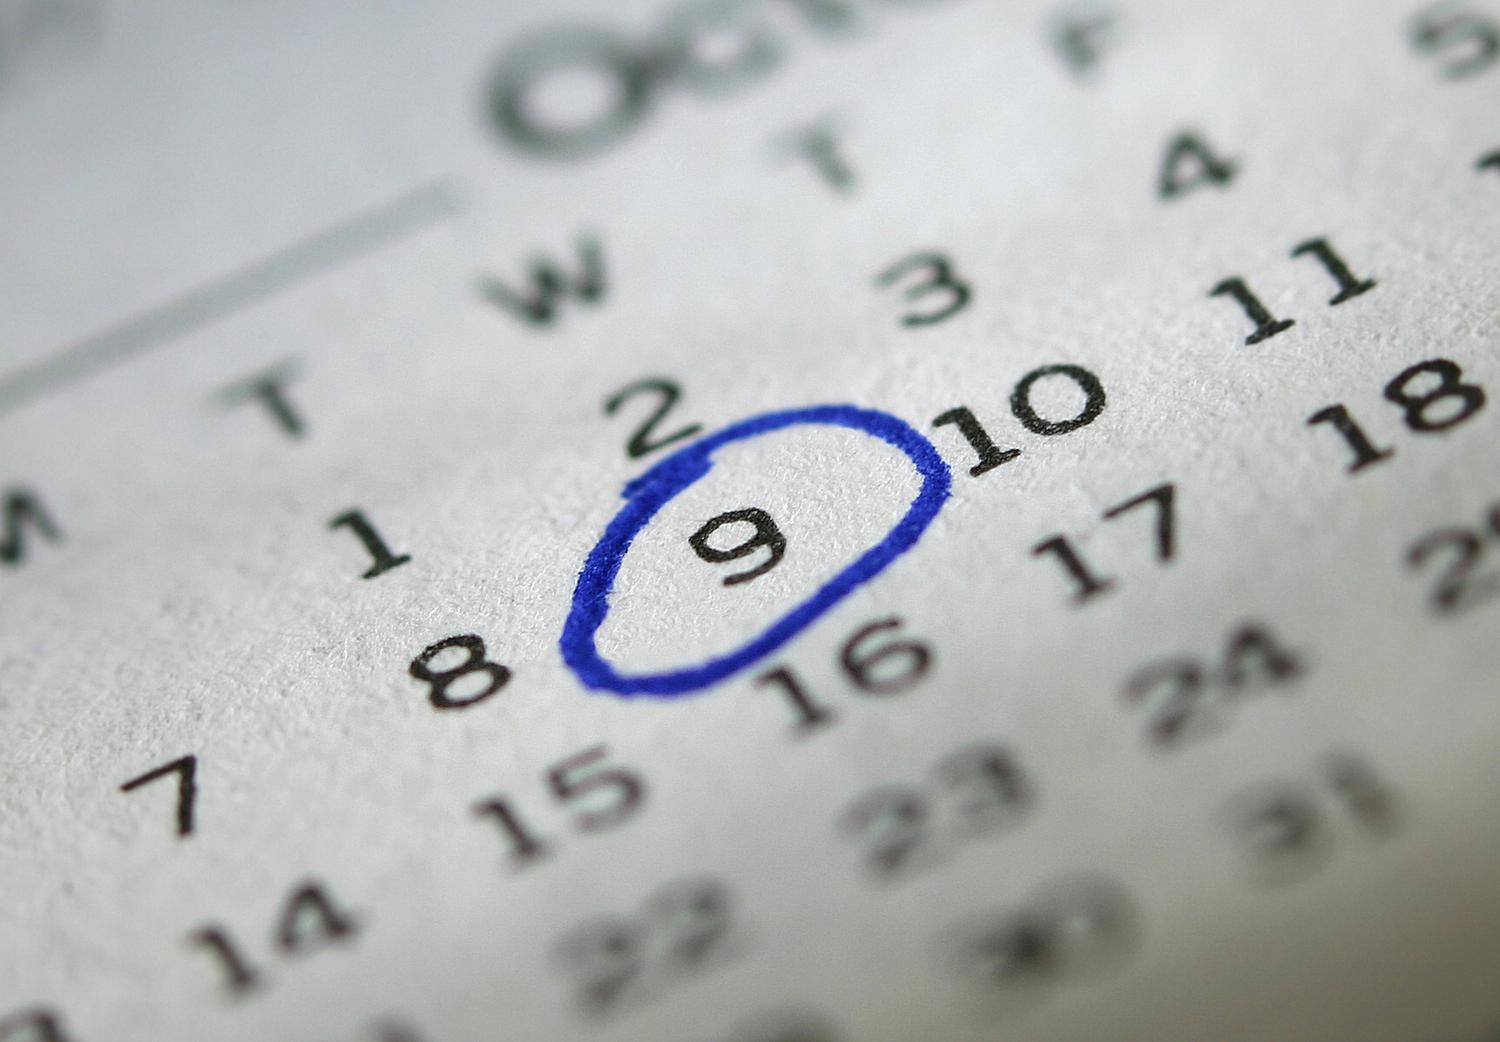 Wednesday the ninth of October on a calendar